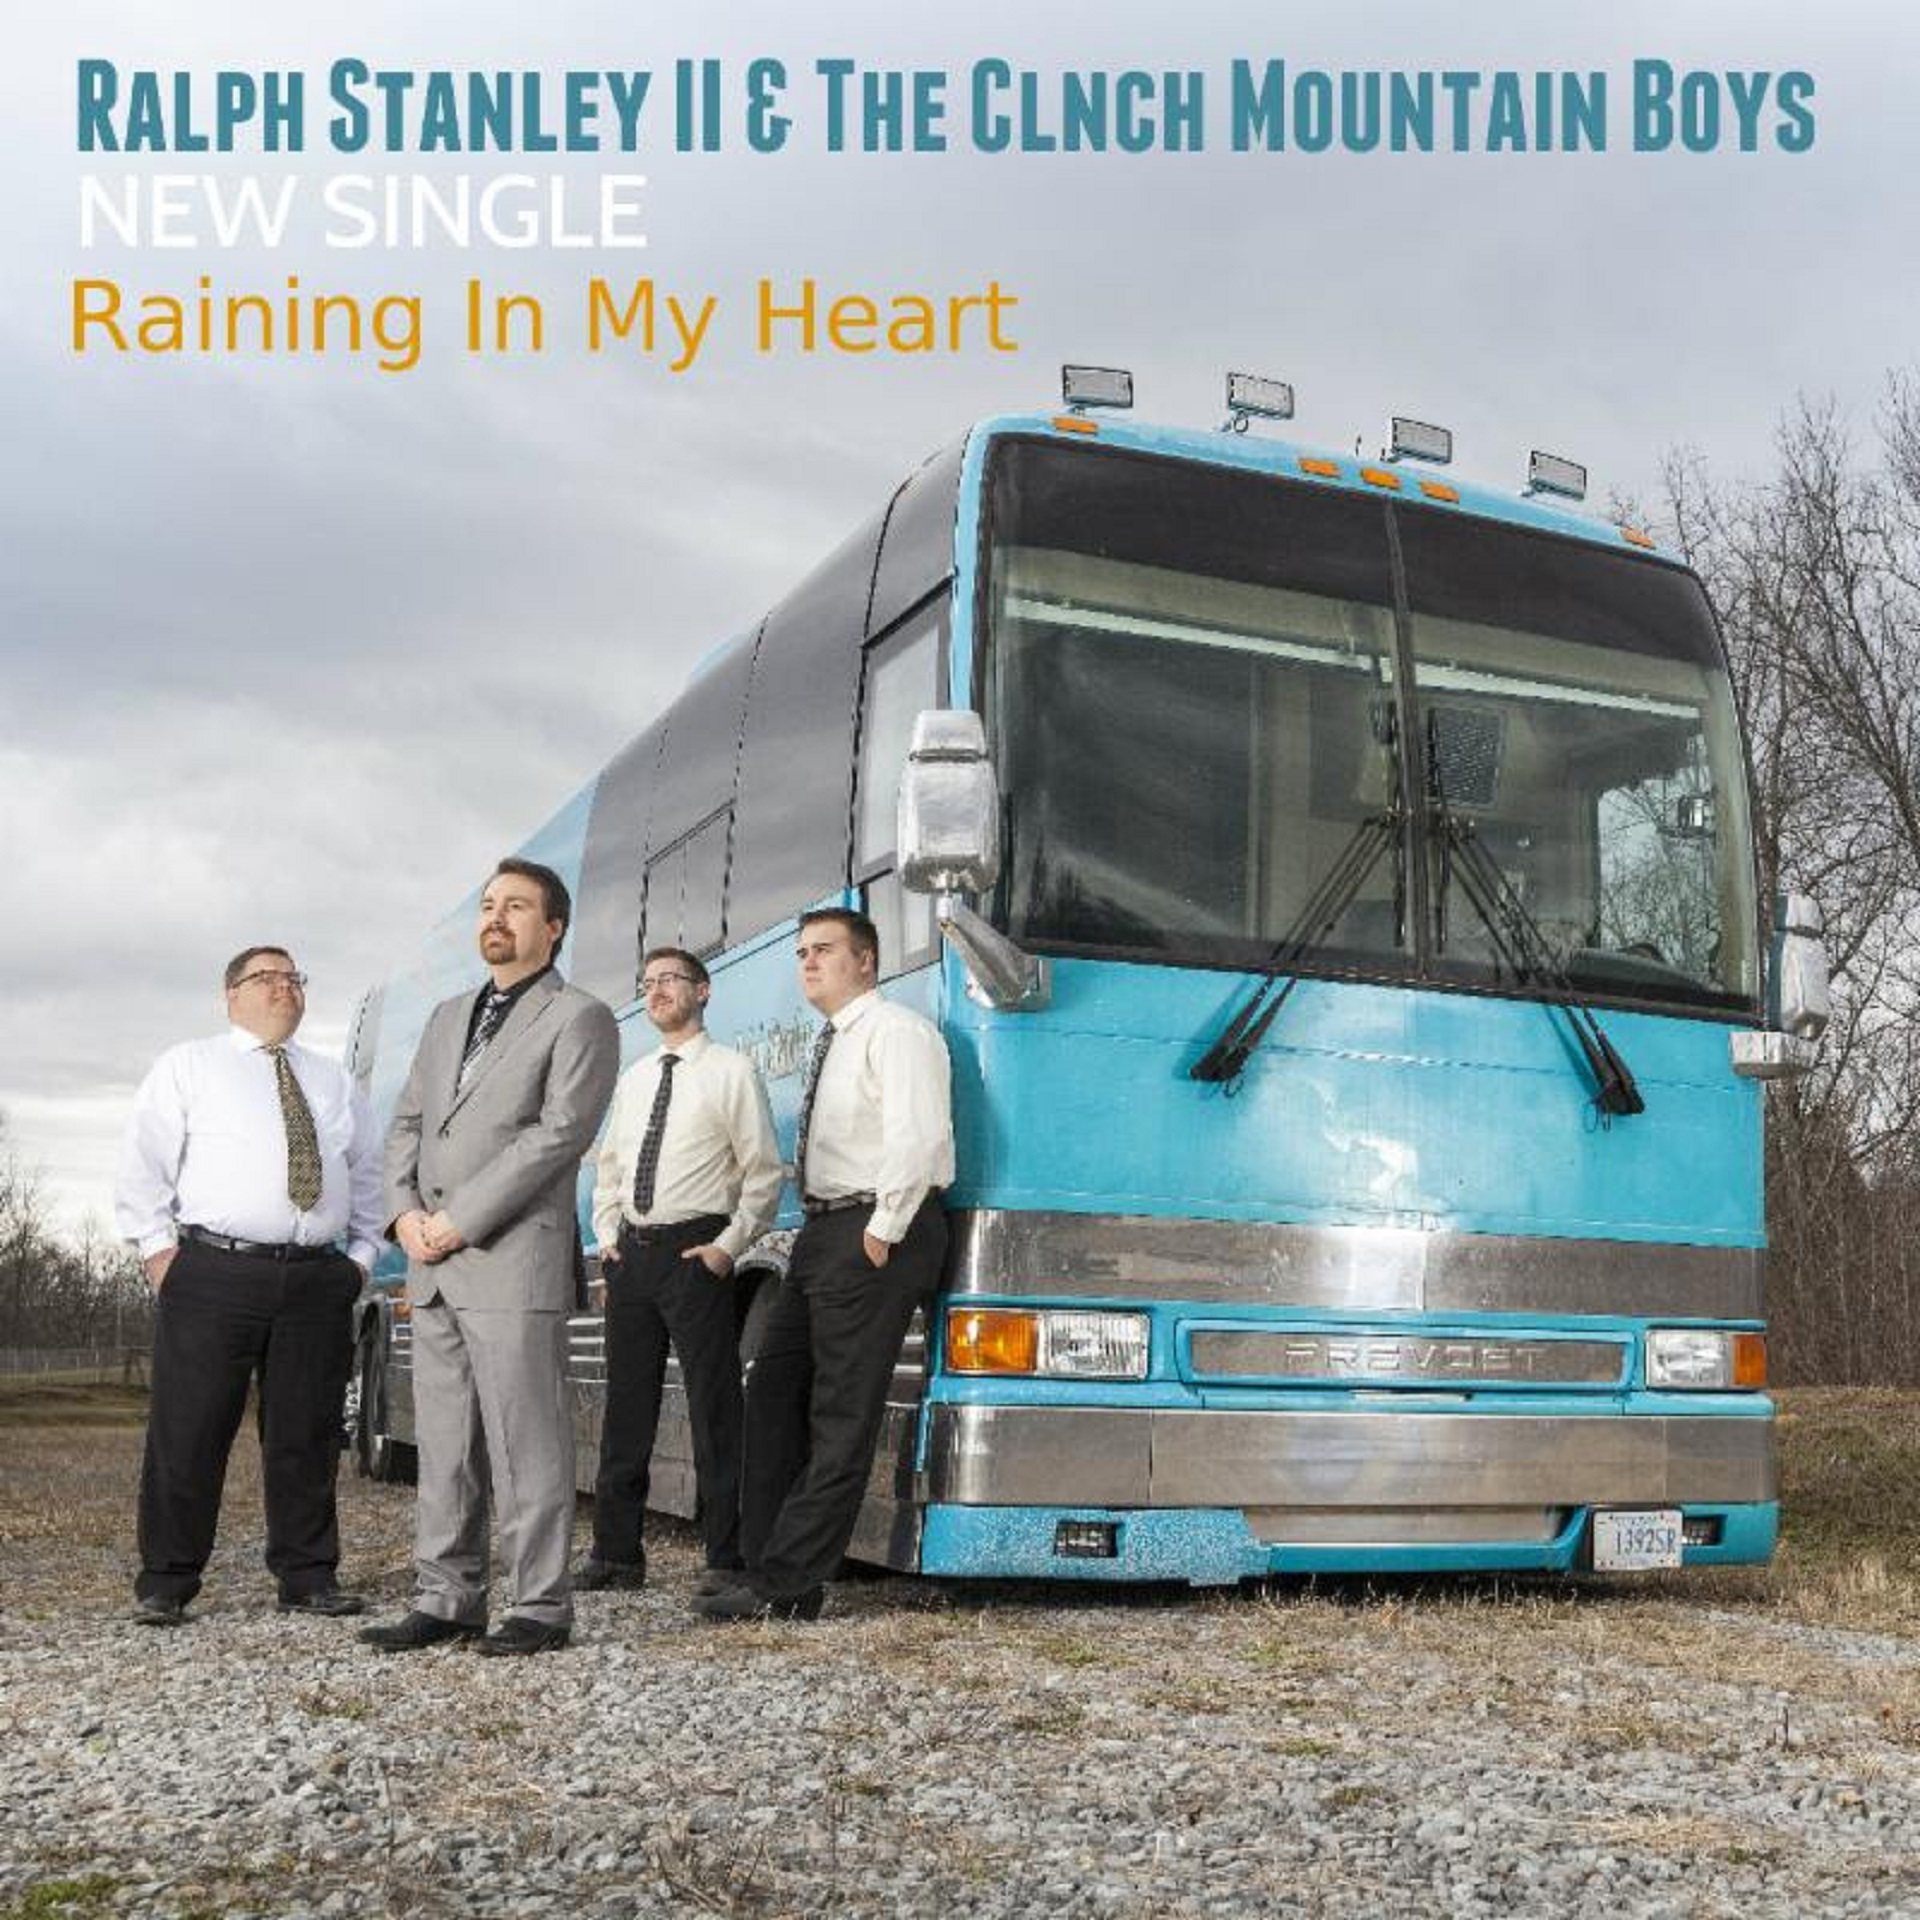 Ralph Stanley II & The Clinch Mountain Boys Release A New Single